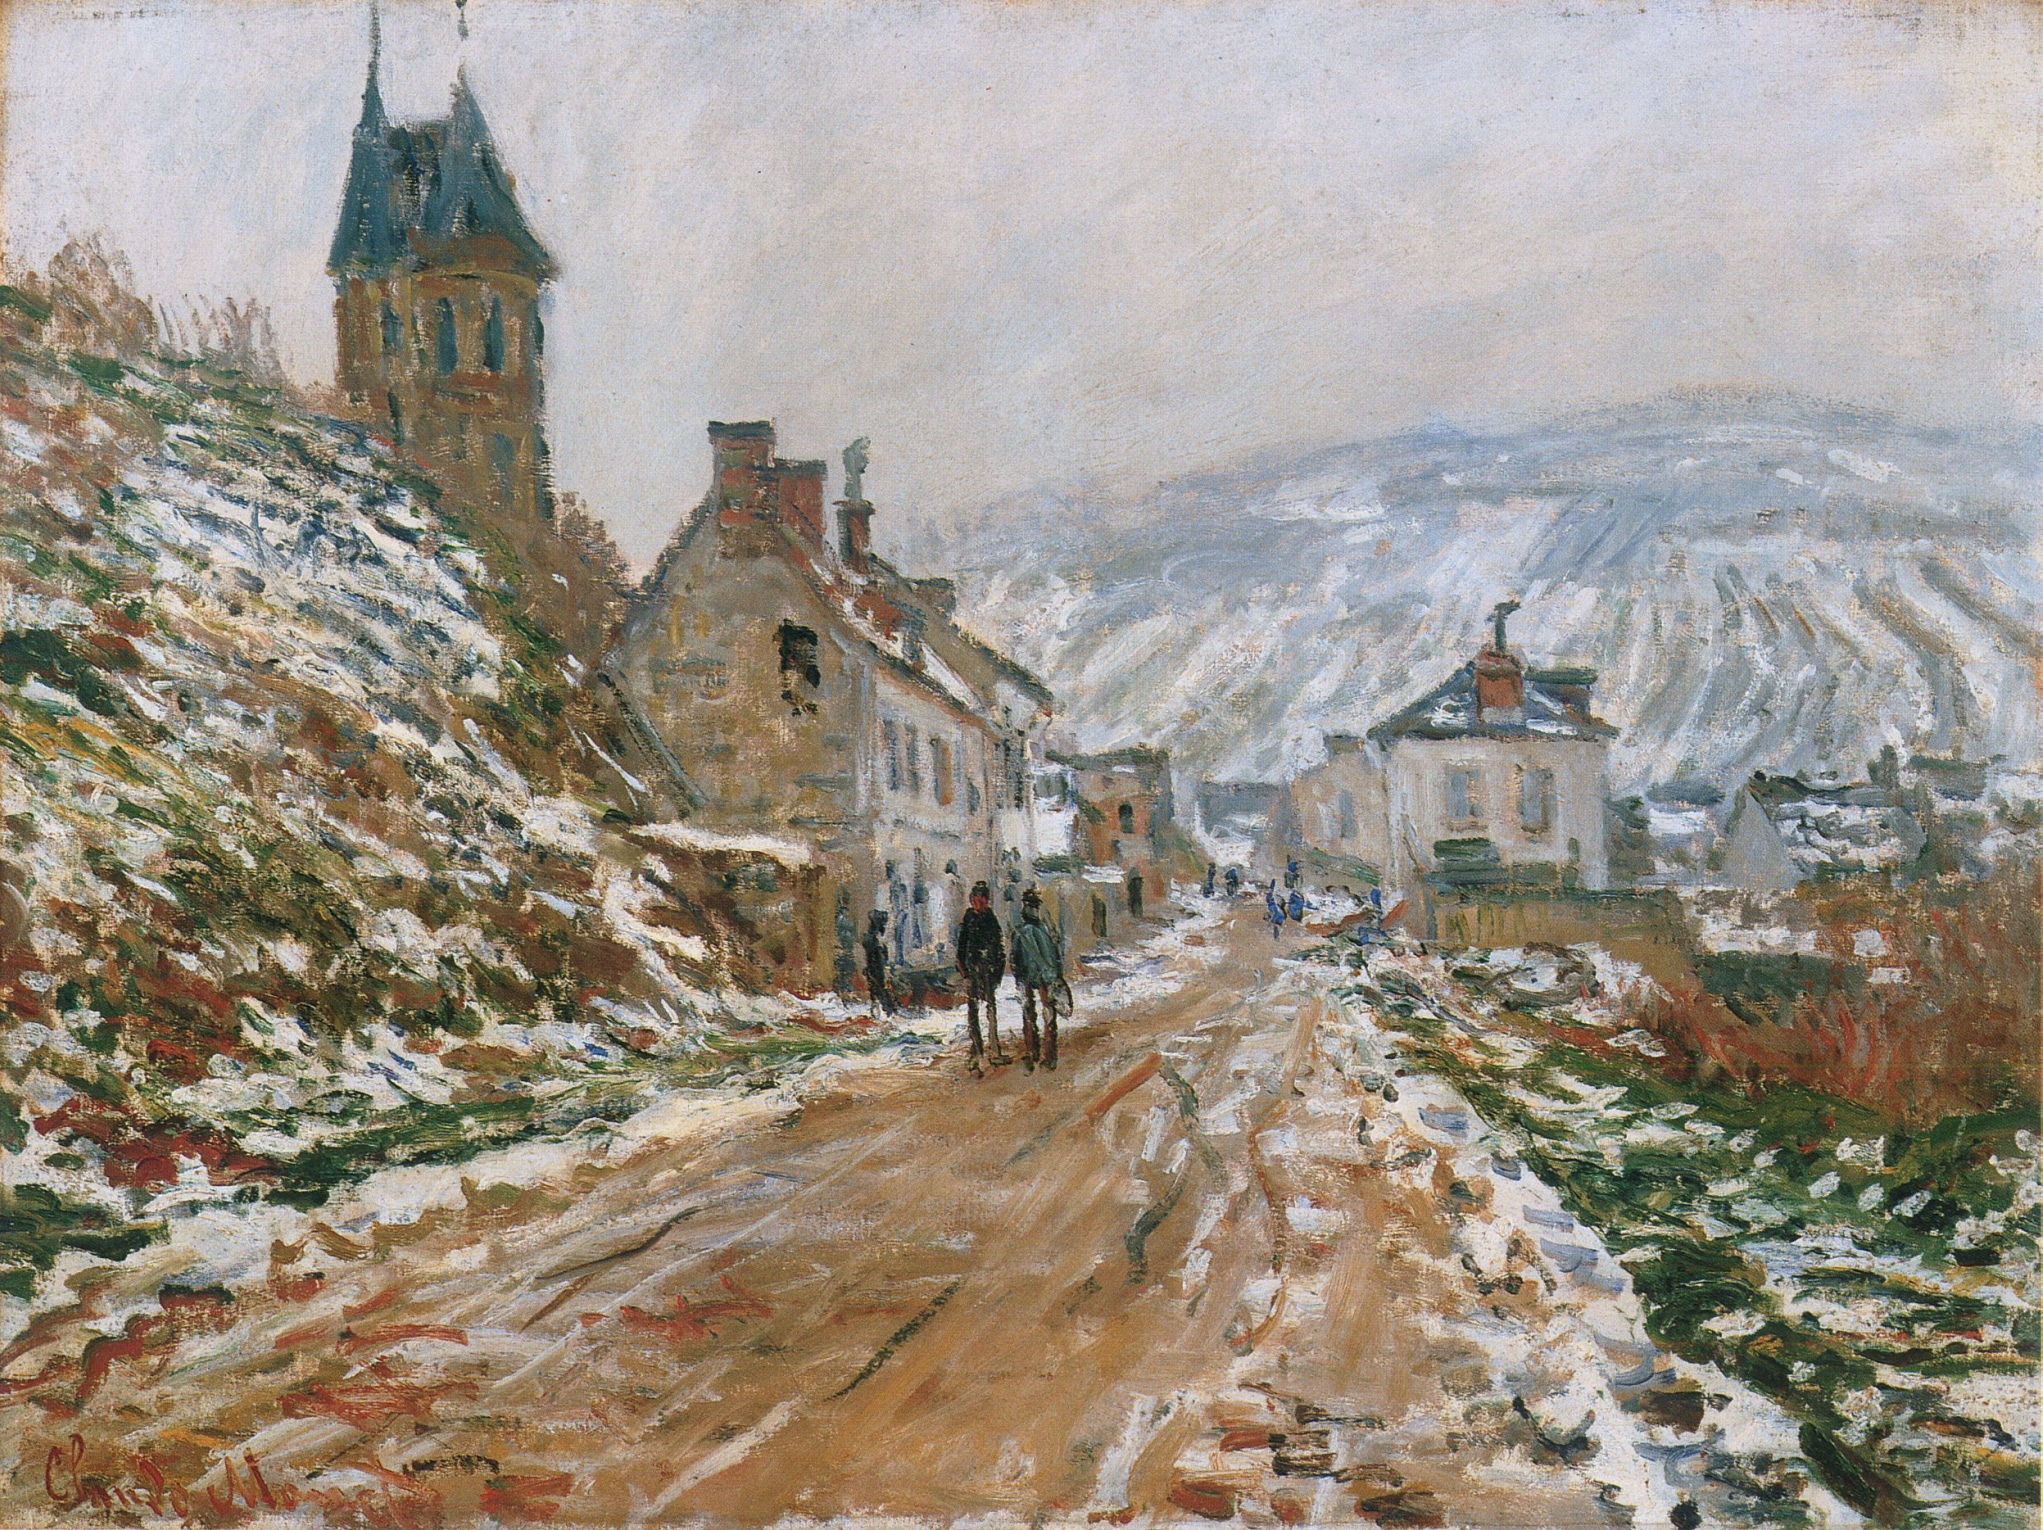 Monet - The Road in Vetheuil in Winter 1879 in high resolution on - art- monet.com